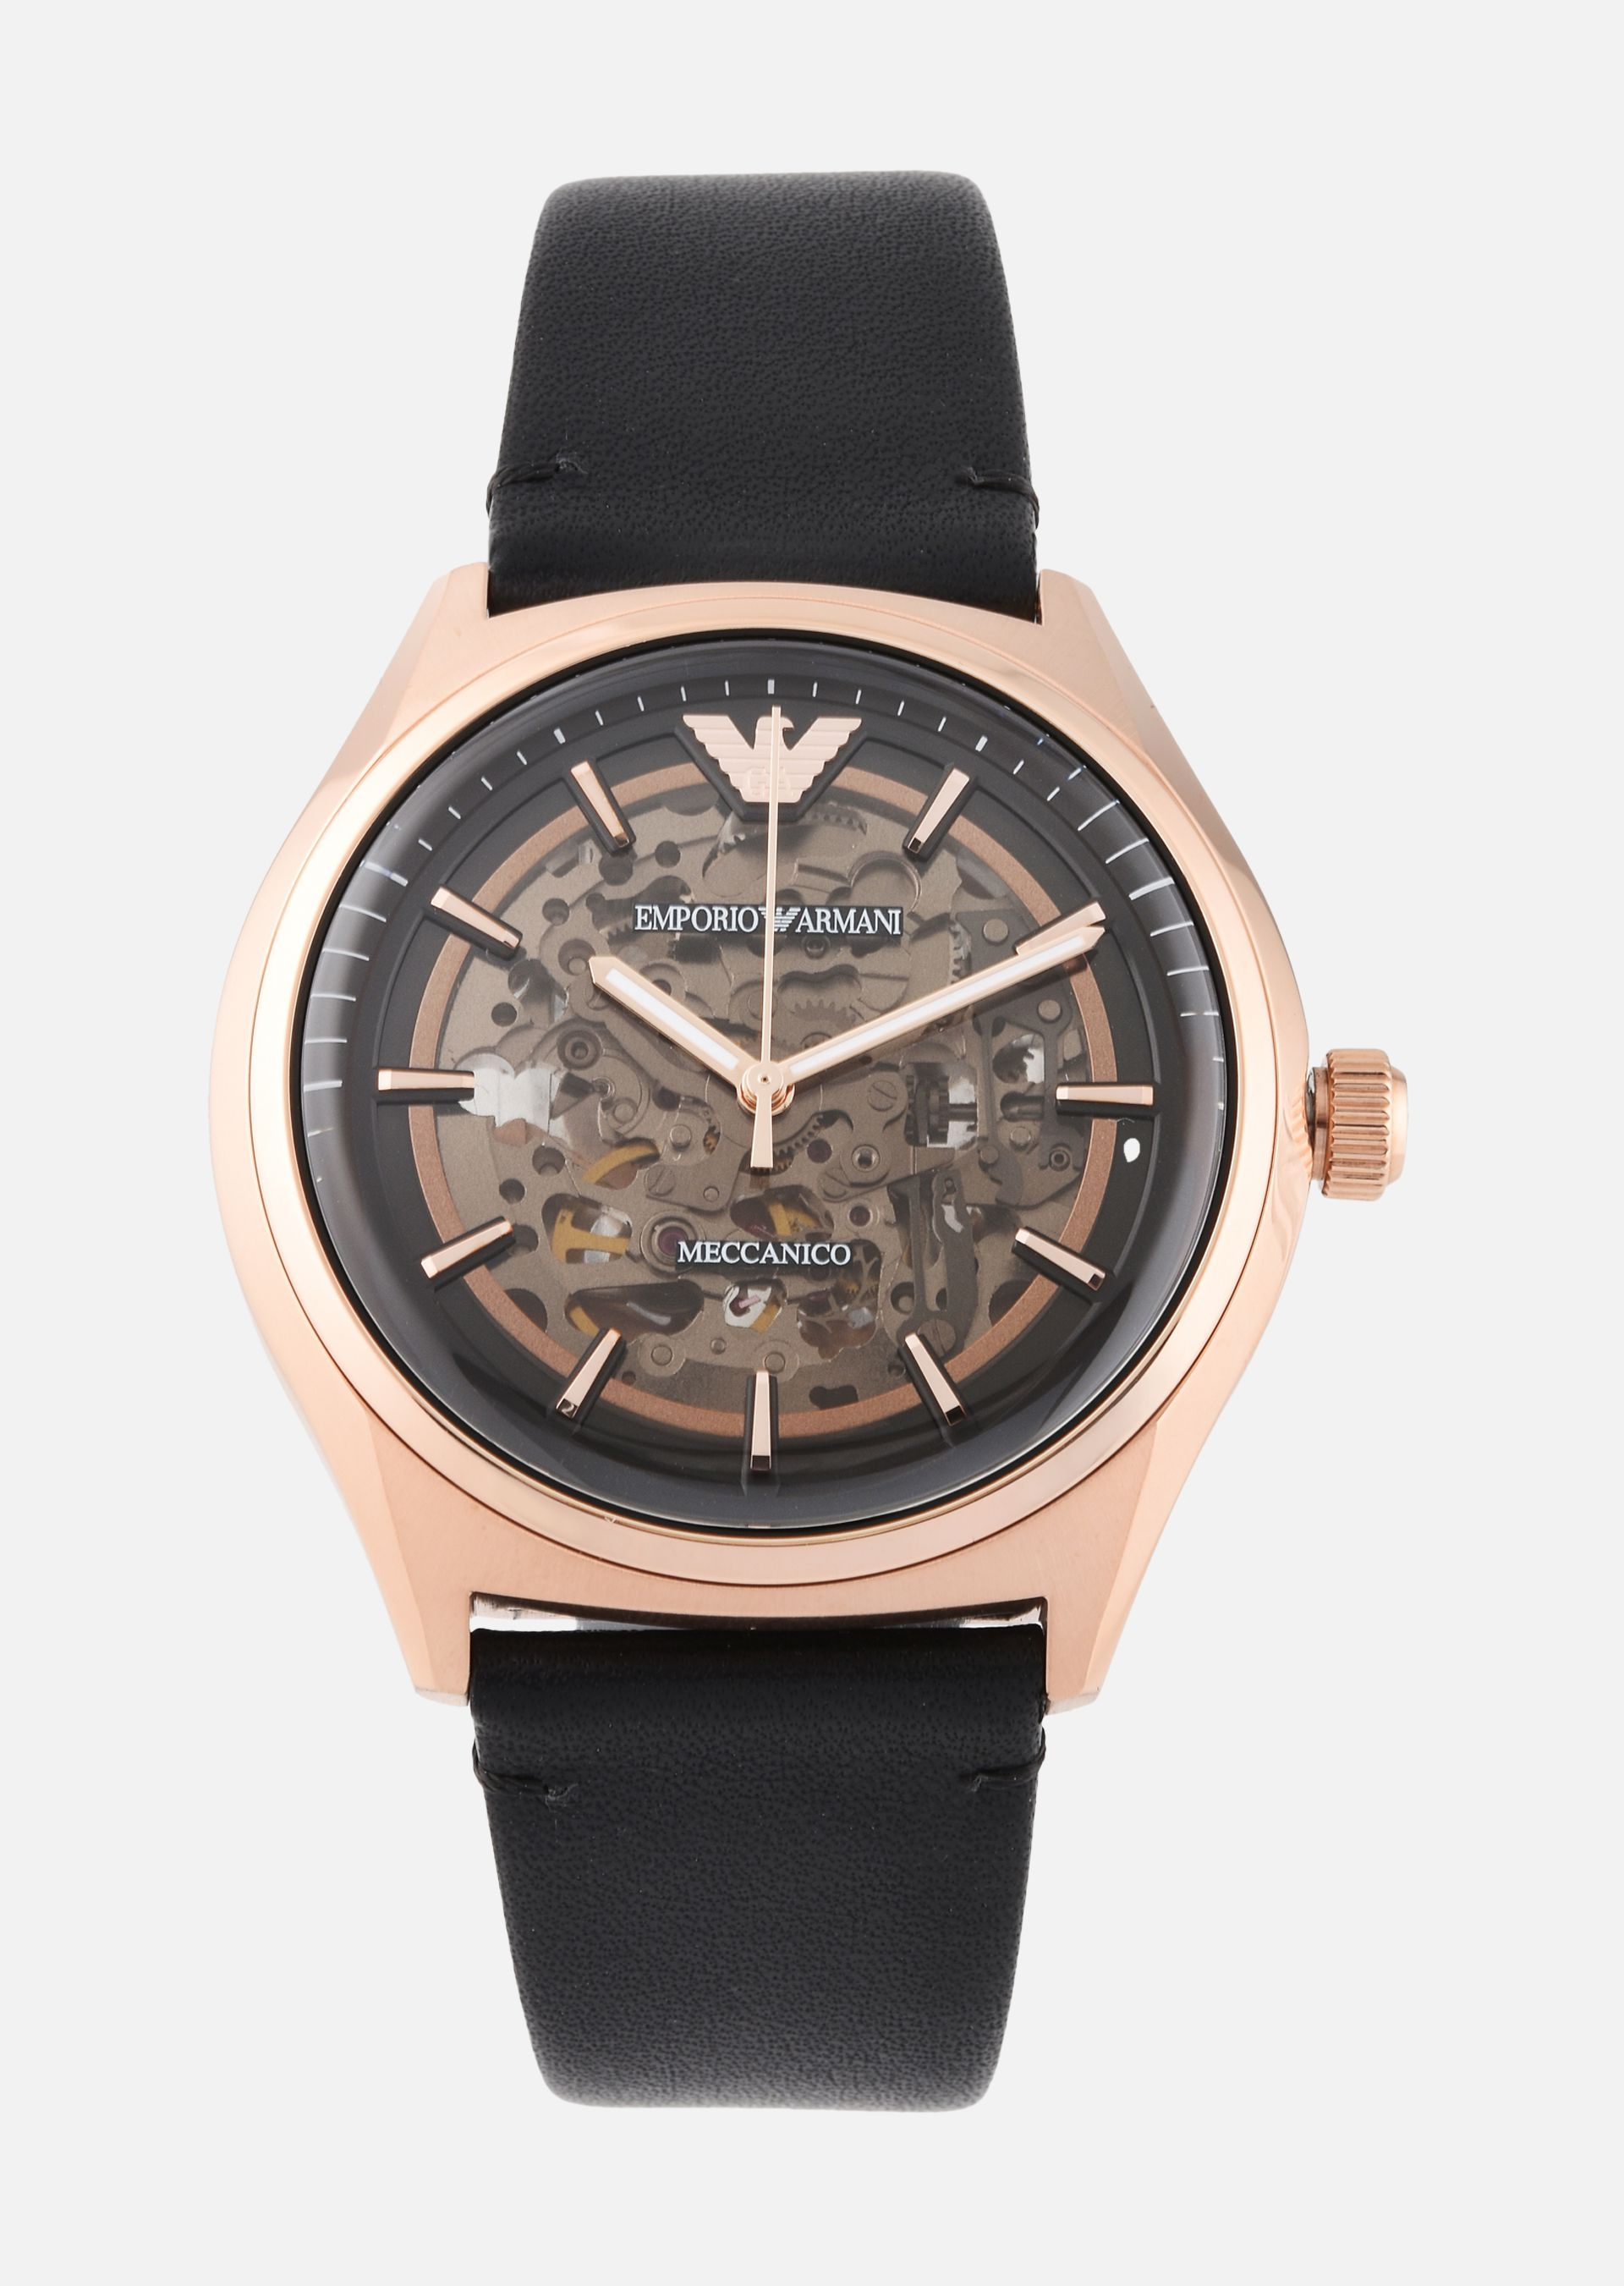 official-store-emporio-armani-watches-watches-on-armani